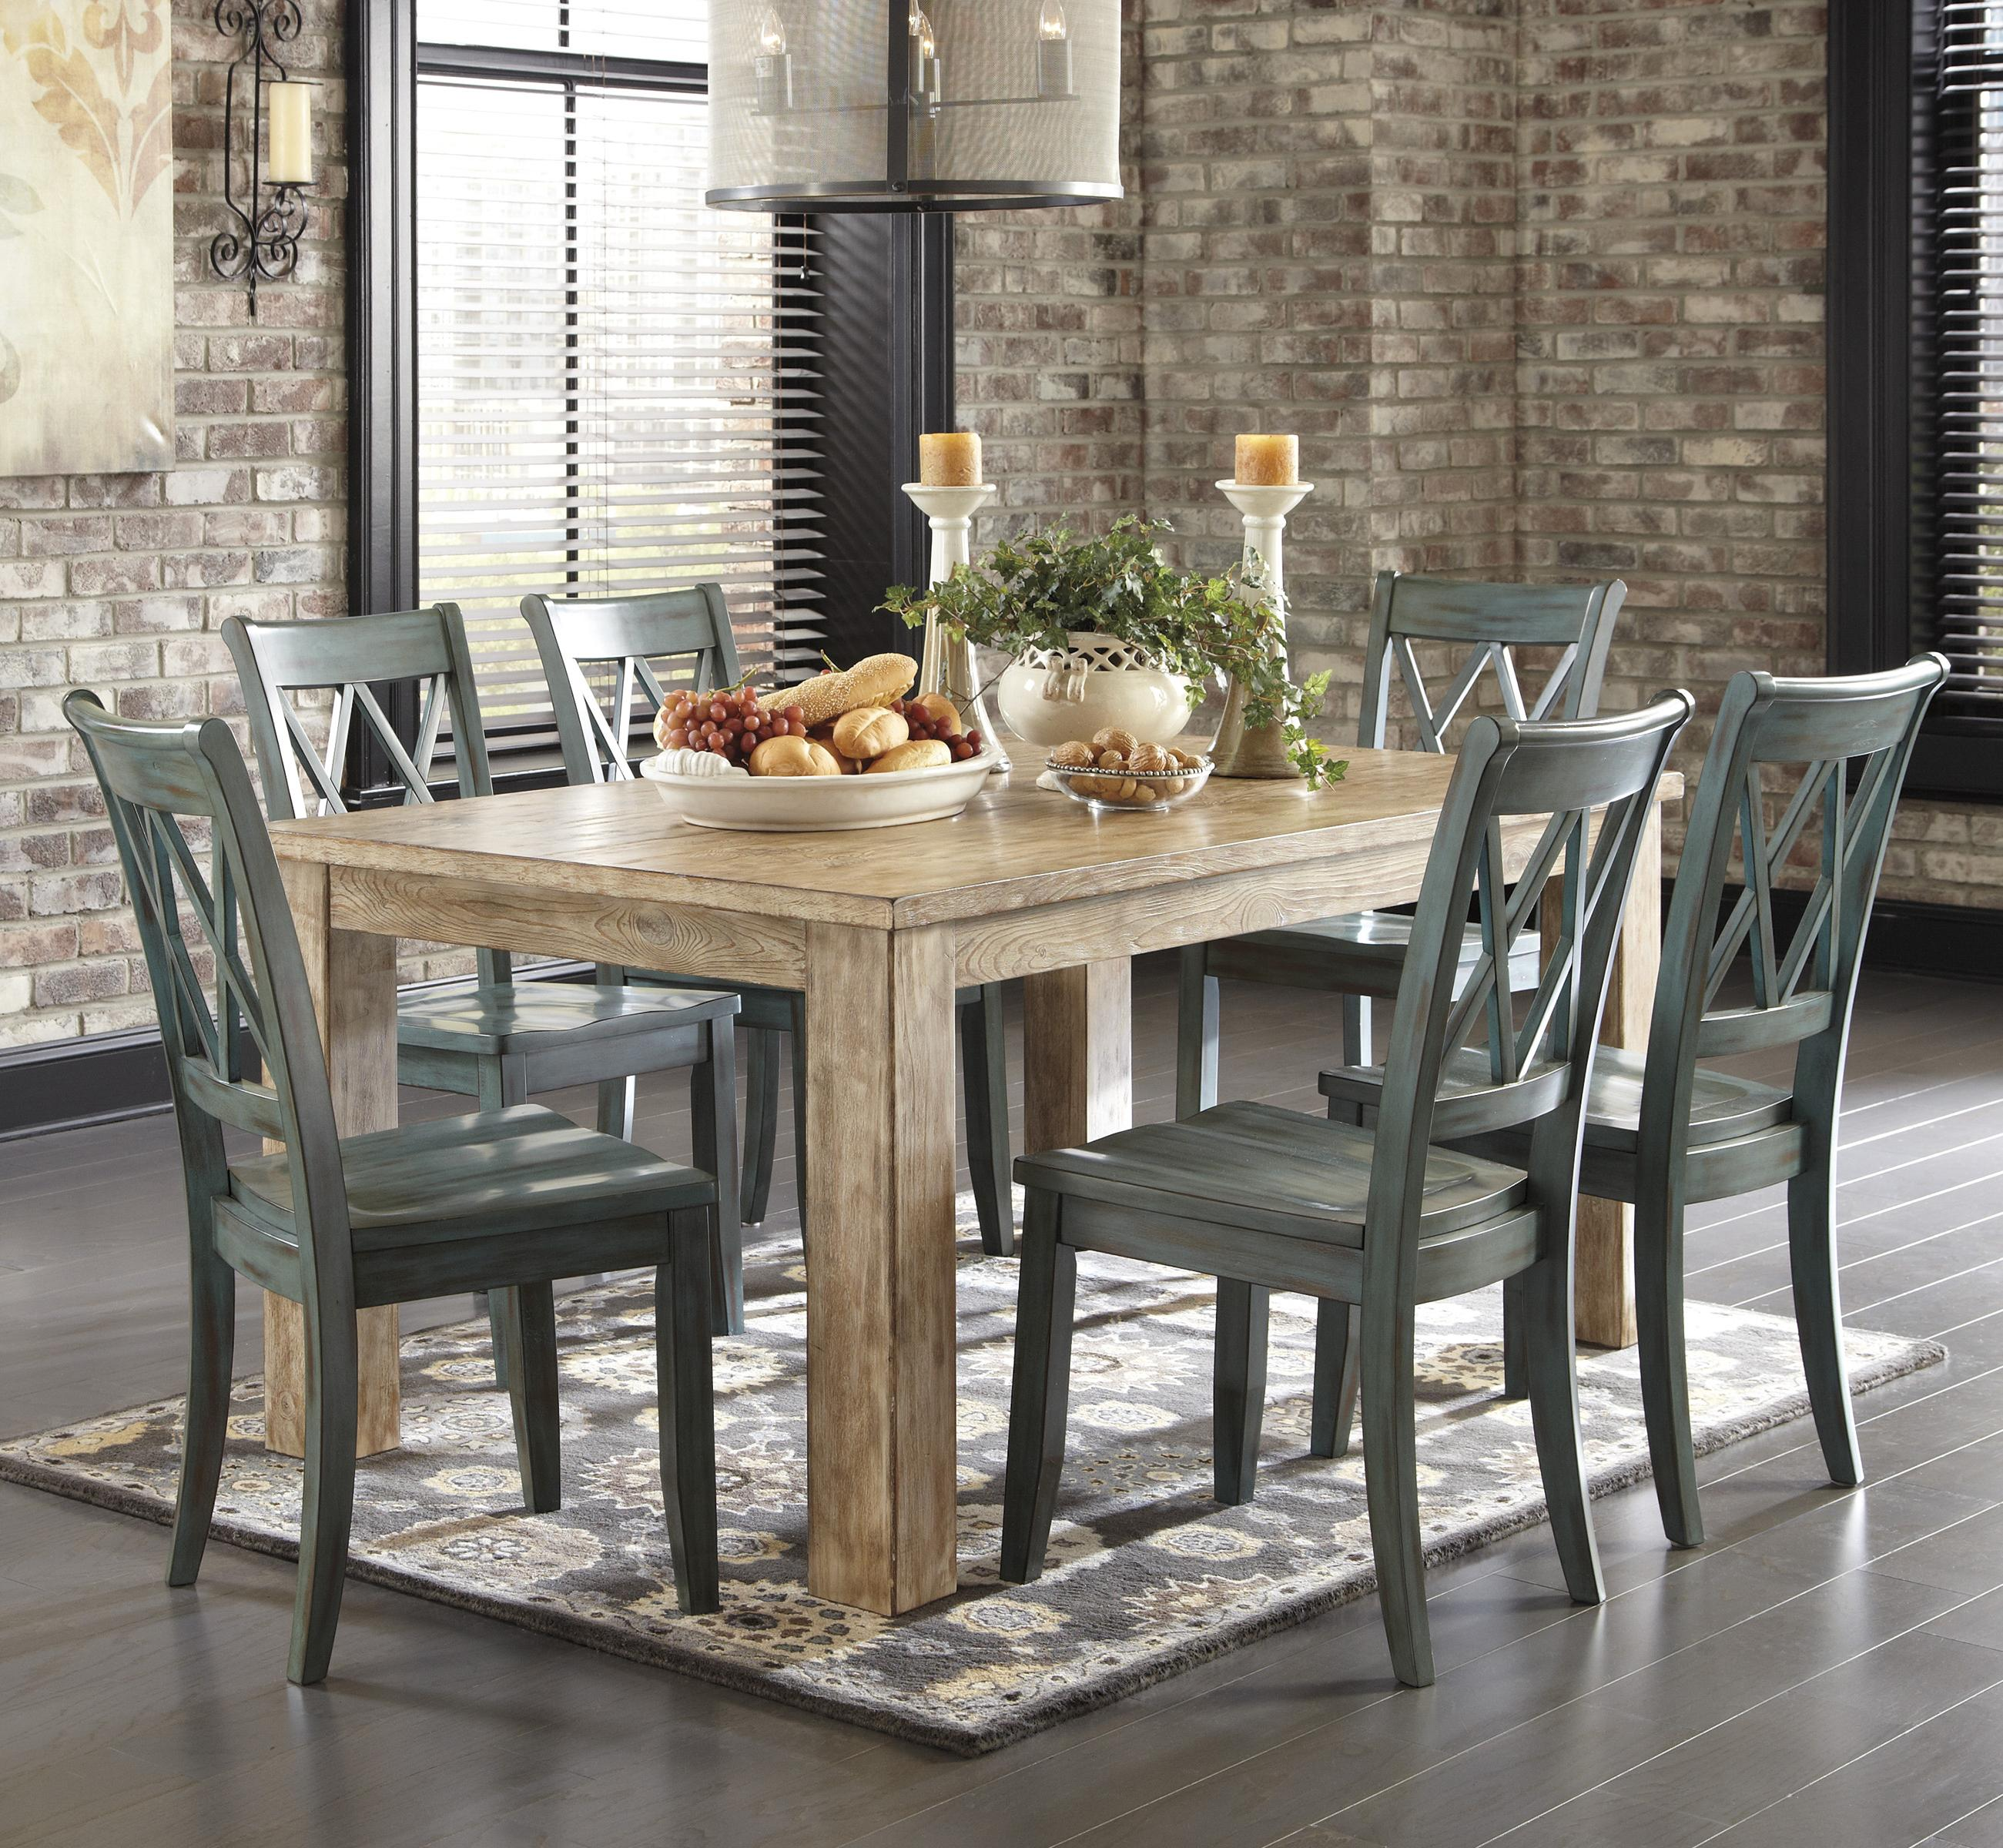 Mestler 7-Piece Table Set with Antique Blue Chairs by Signature Design at Fisher Home Furnishings